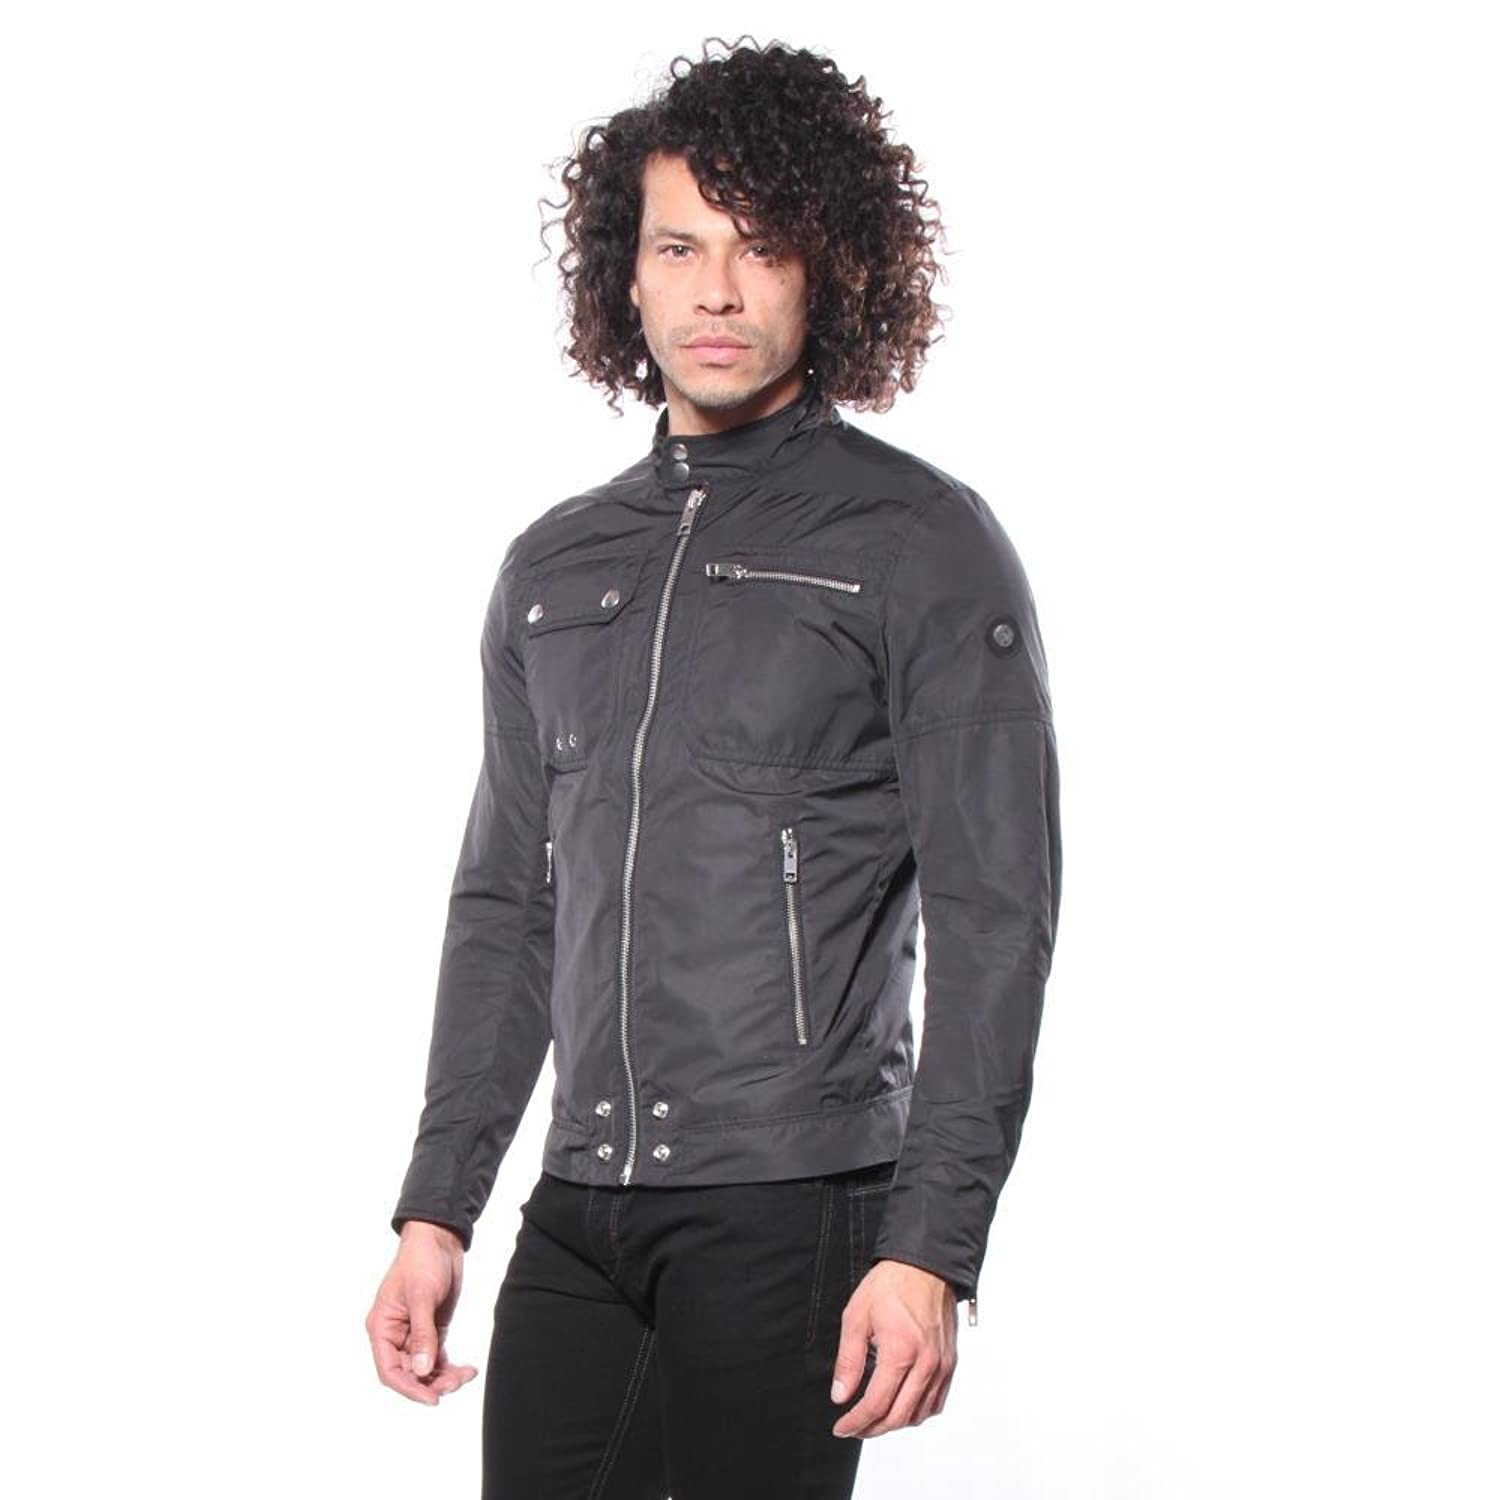 Diesel - Men's J-Ride Jacket Jackets